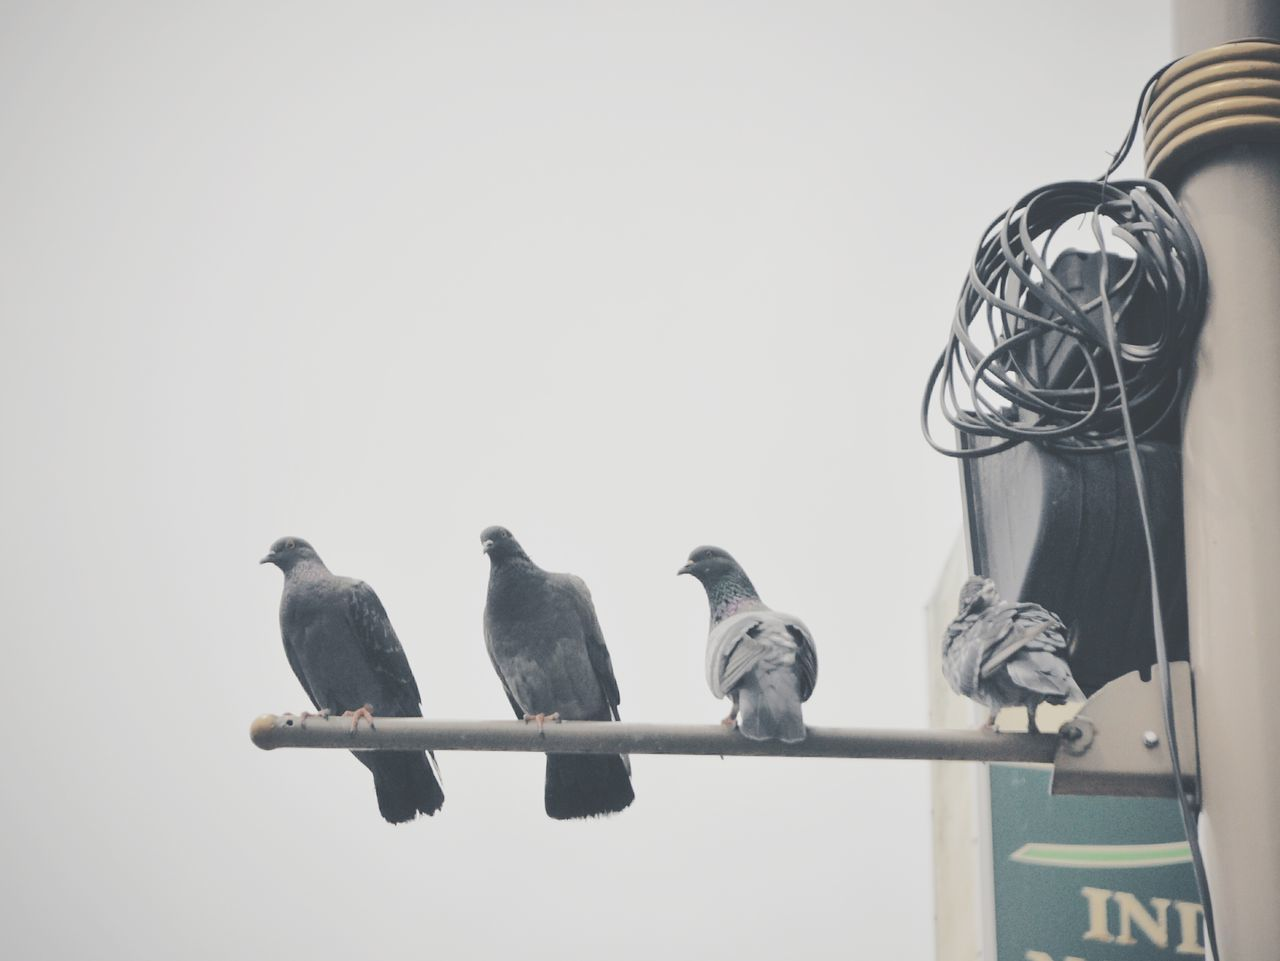 Pigeons Birds Street Up Close Street Photography Old Style Travel Sky Landing Bird Photography Pigeon Bird  Pigeons Everywhere Pigeons On The Top The Street Photographer - 2016 EyeEm Awards